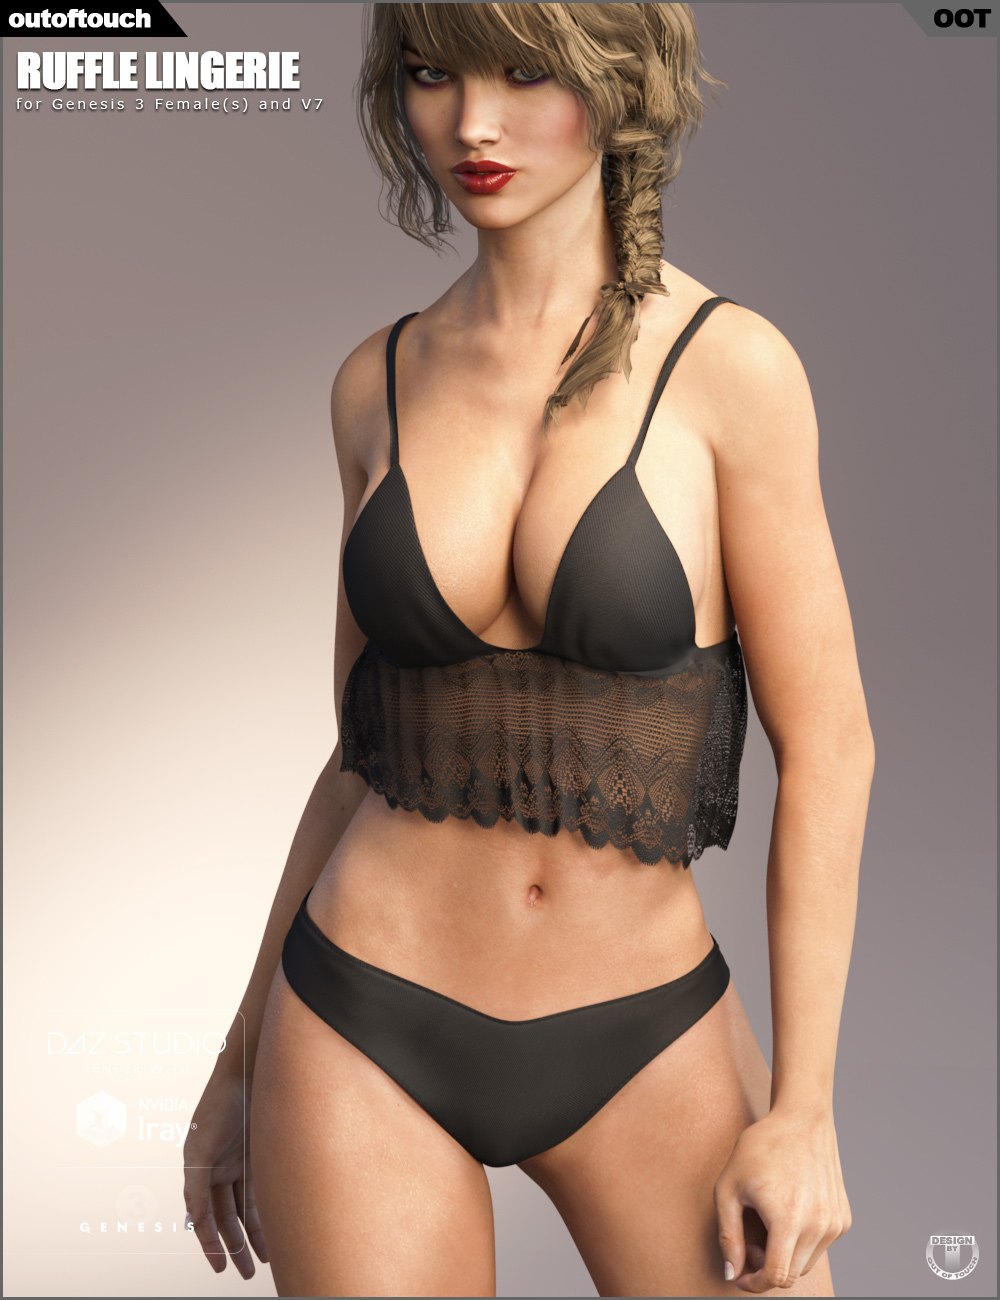 Ruffle Lingerie for Genesis 3 Female(s) by: outoftouch, 3D Models by Daz 3D